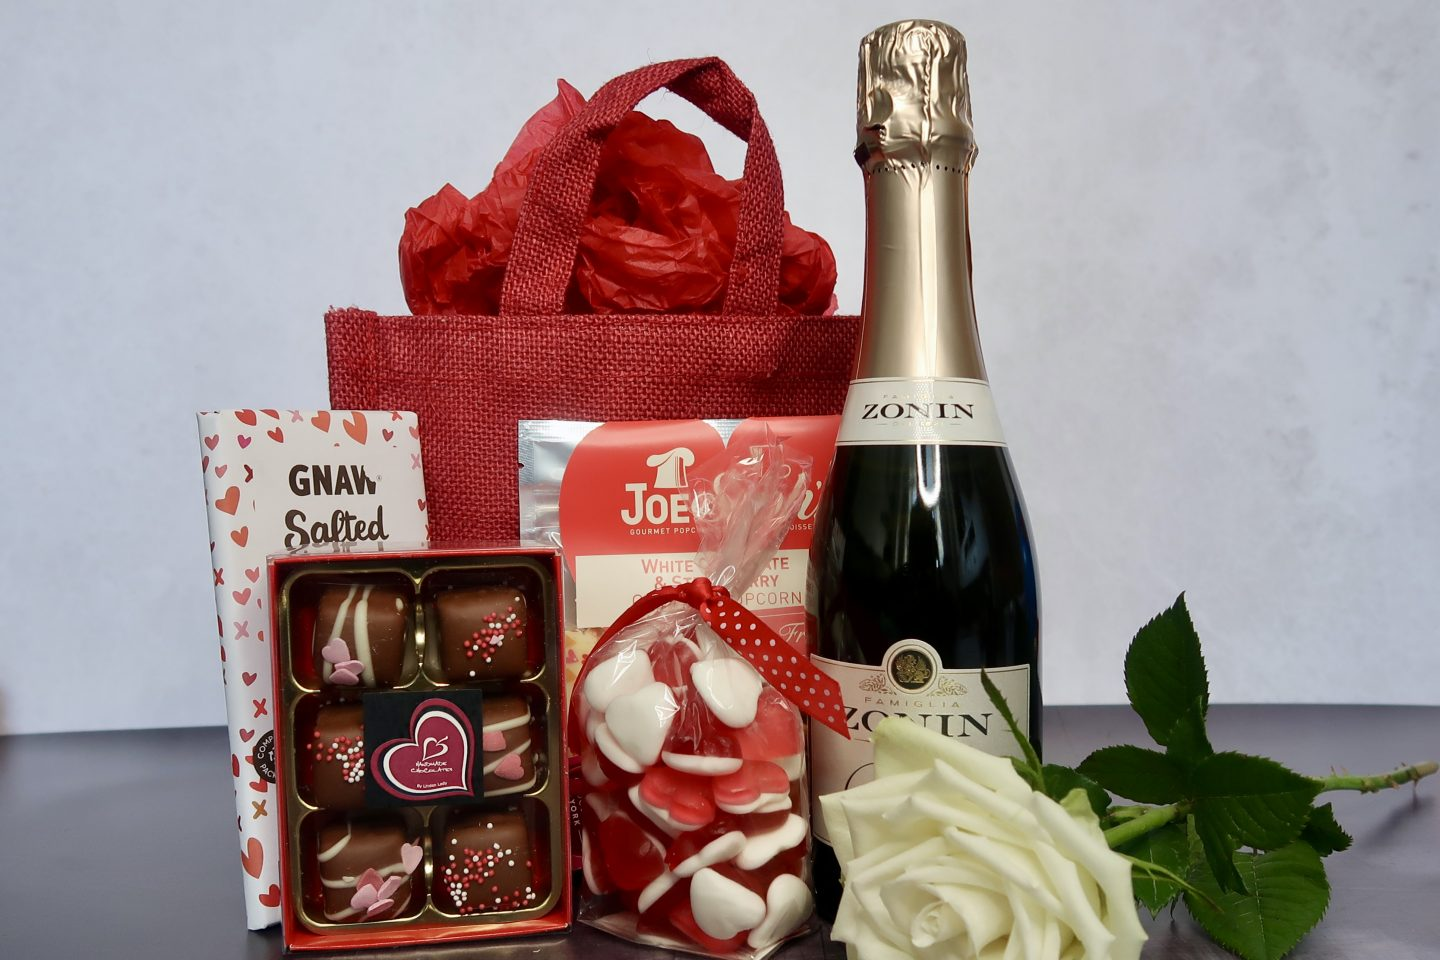 A Valentine's hamper full of treats, laid out in front of a red canvas bag